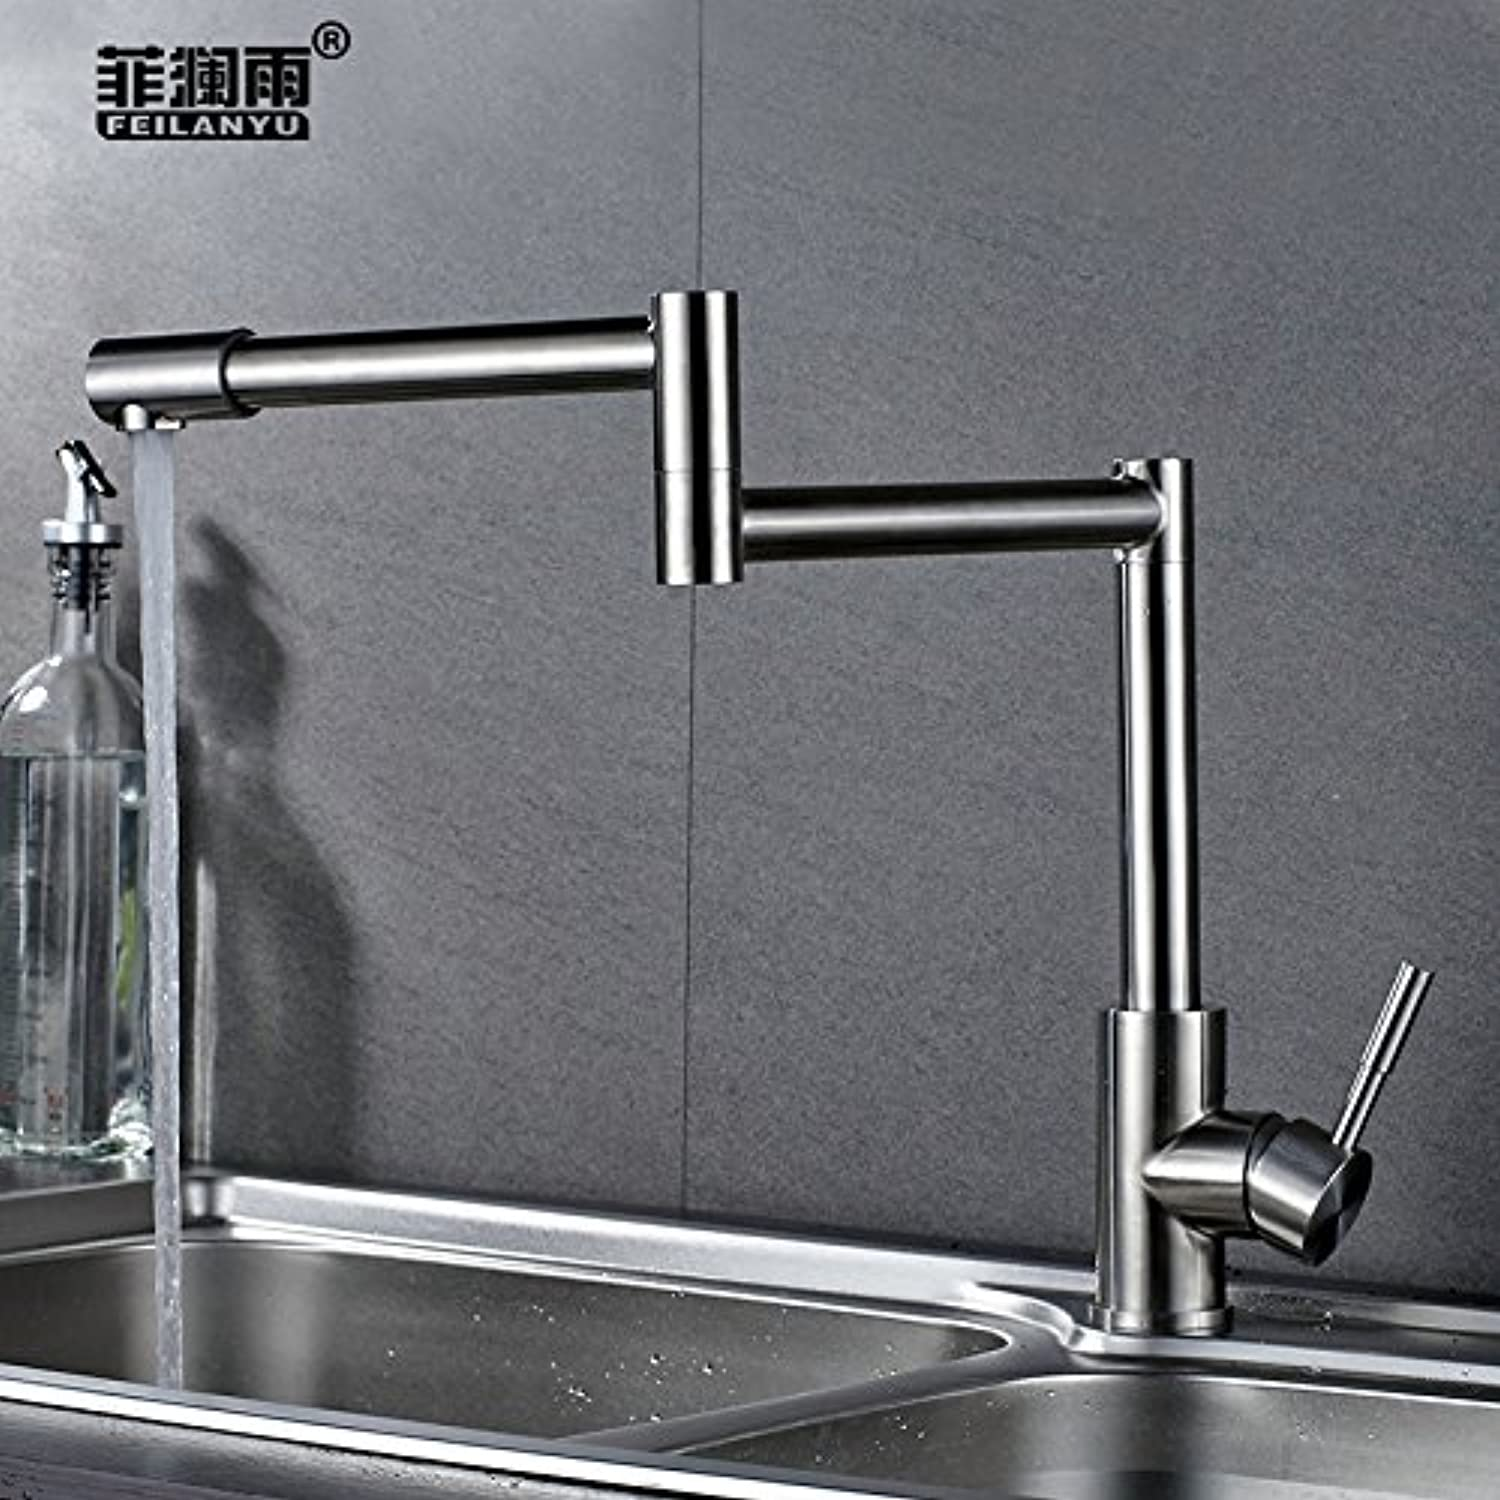 Gyps Faucet Waterfall for Cold Water and Hot Water Tap Bathroom Stainless Steel 304 Sink and Tap Cold Water for Washing Plates Folding Pool Can Be redated PE